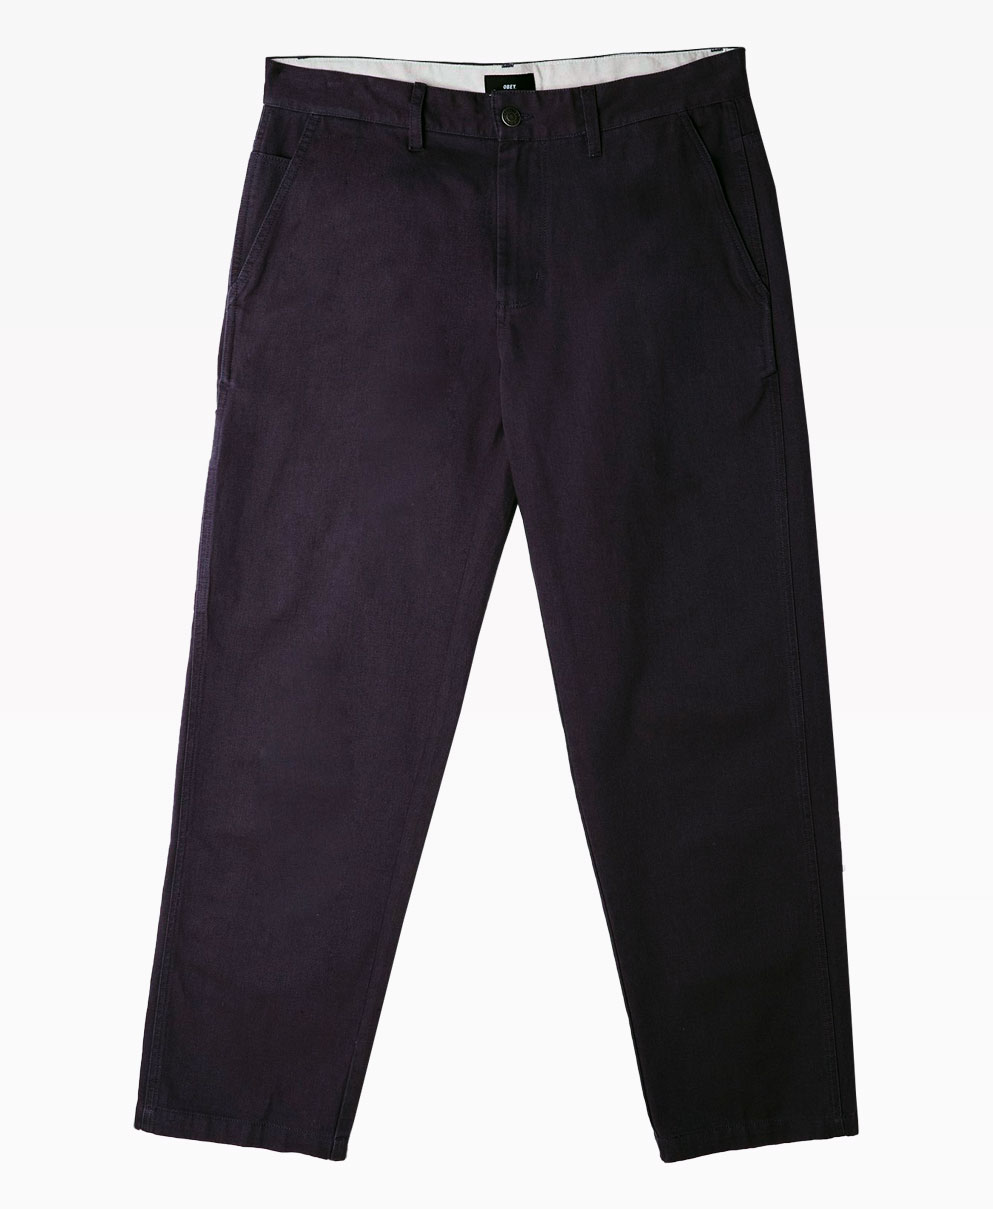 Obey Clothing Hardwork Carpenter Ii Pant Front